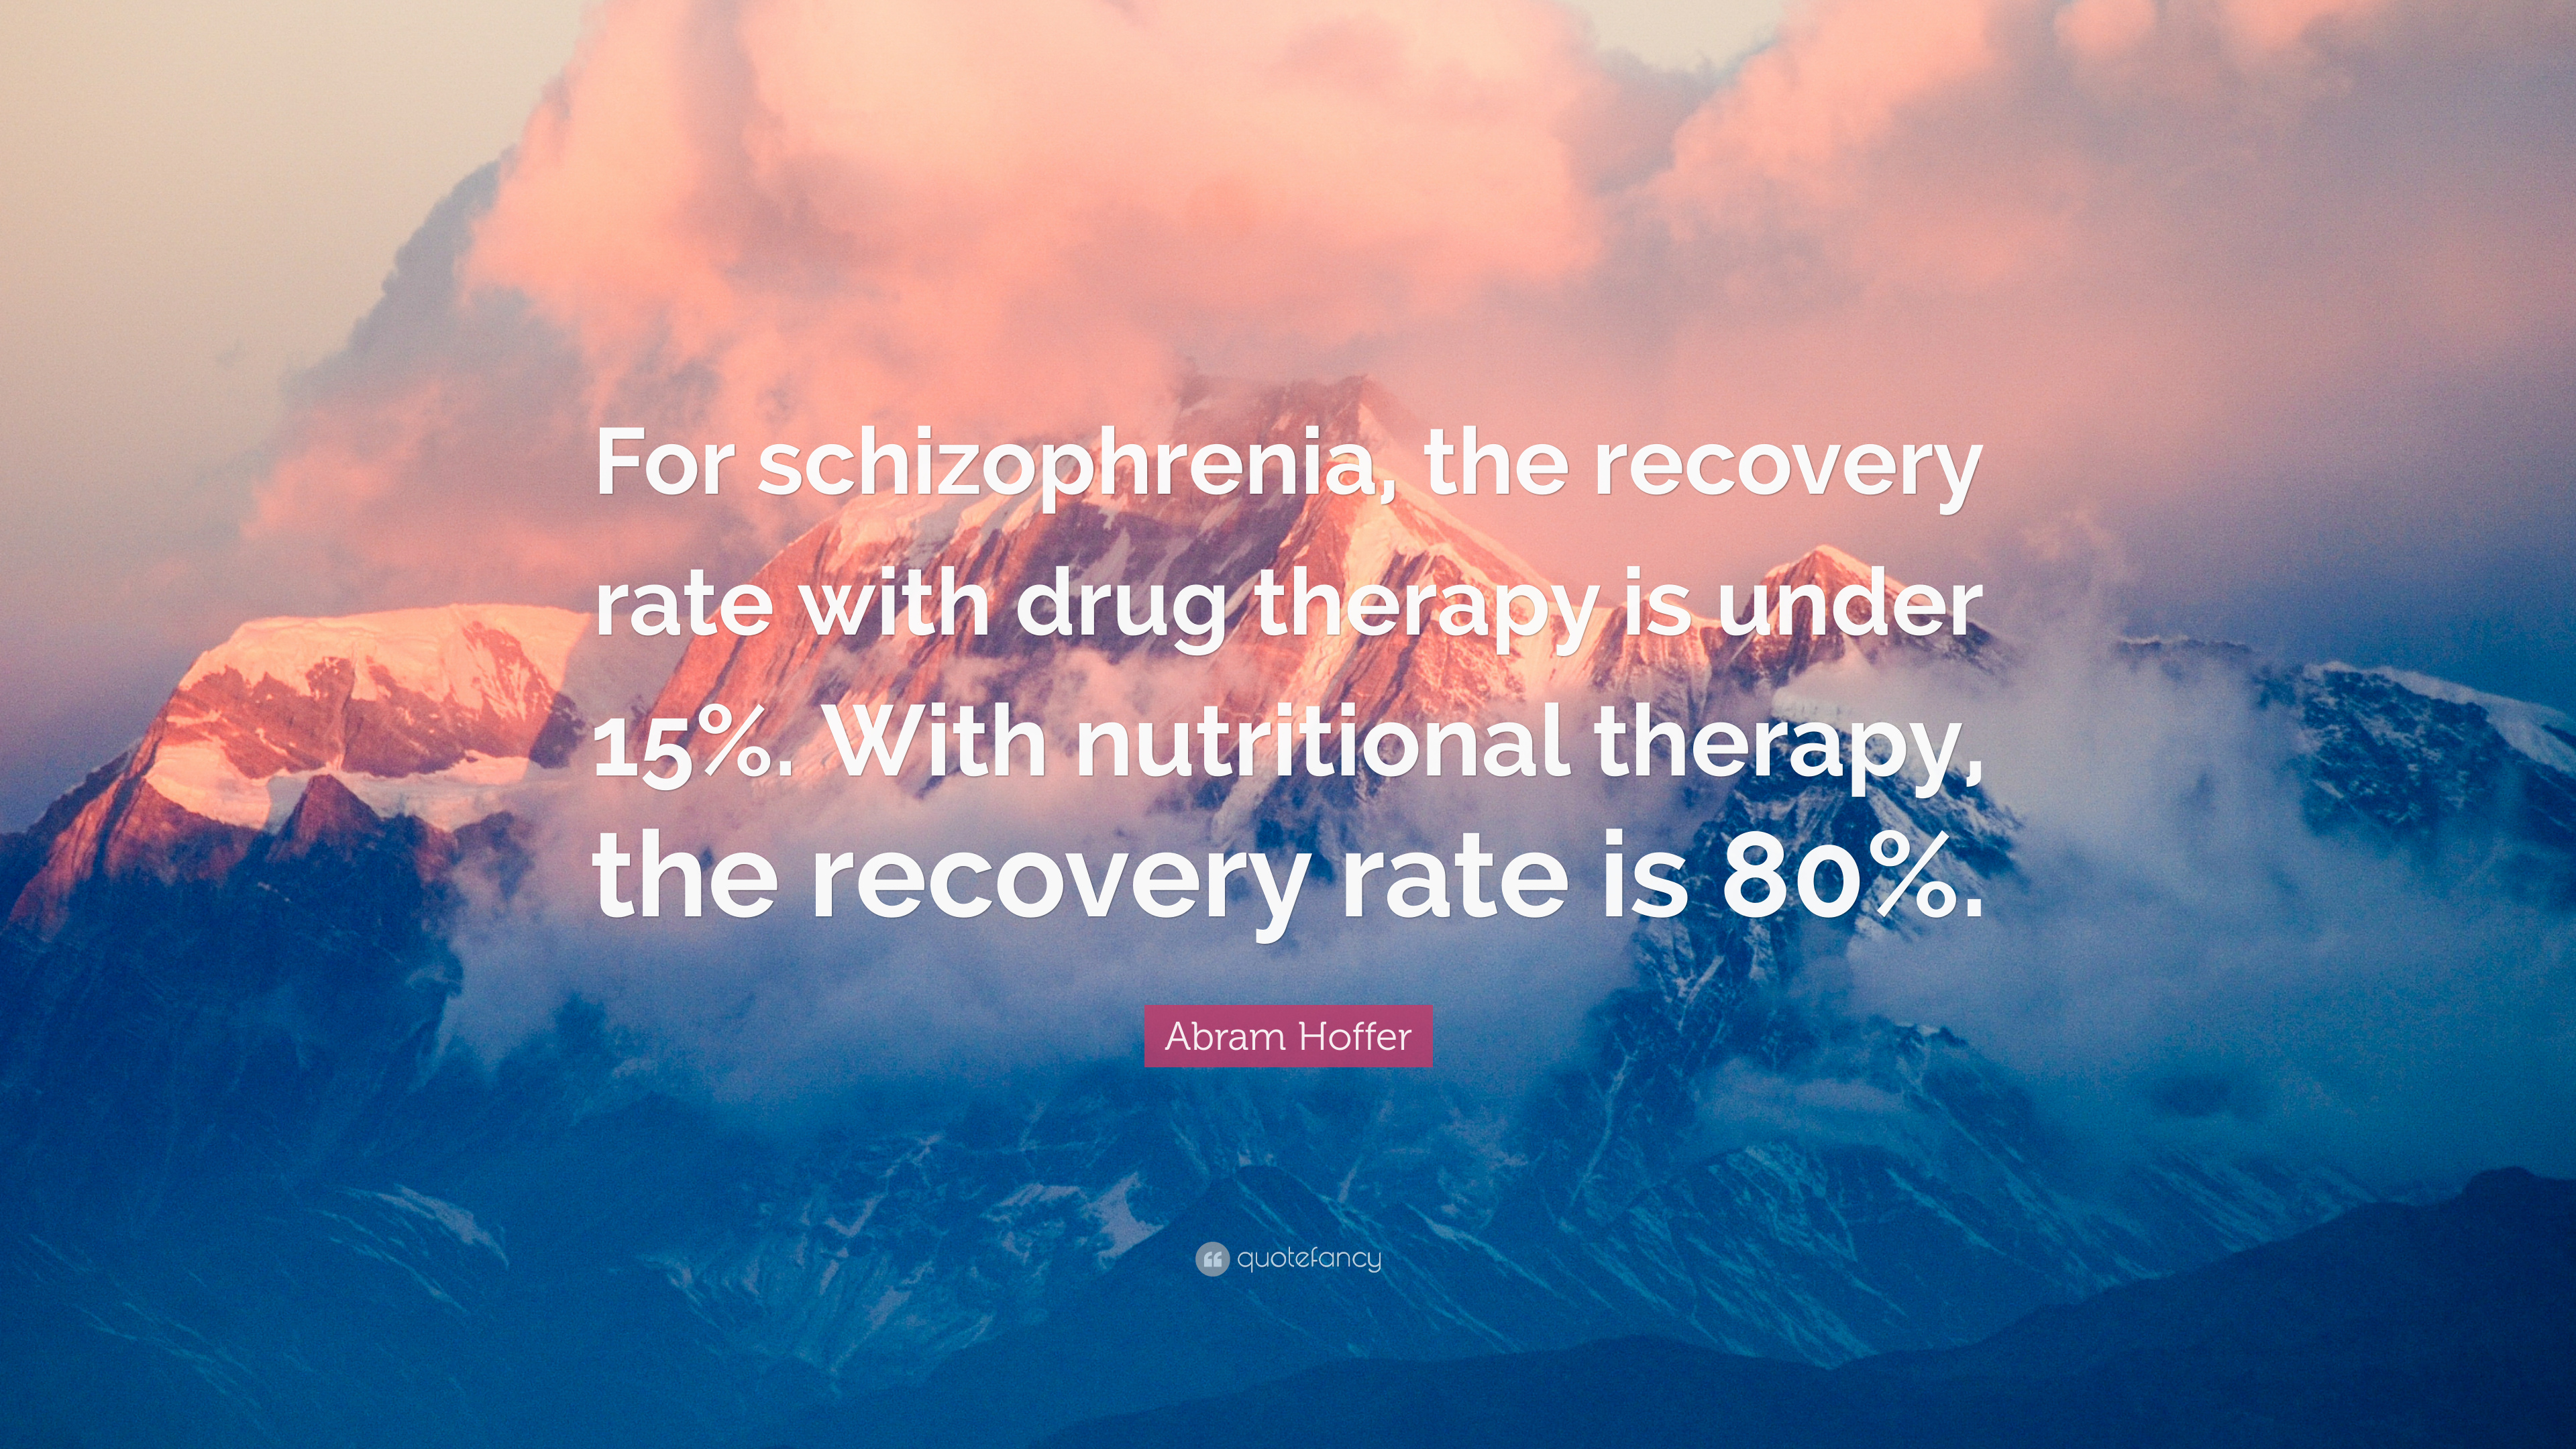 Abram Hoffer Quote For Schizophrenia The Recovery Rate With Drug Therapy Is Under 15 With Nutritional Therapy The Recovery Rate Is 80 7 Wallpapers Quotefancy